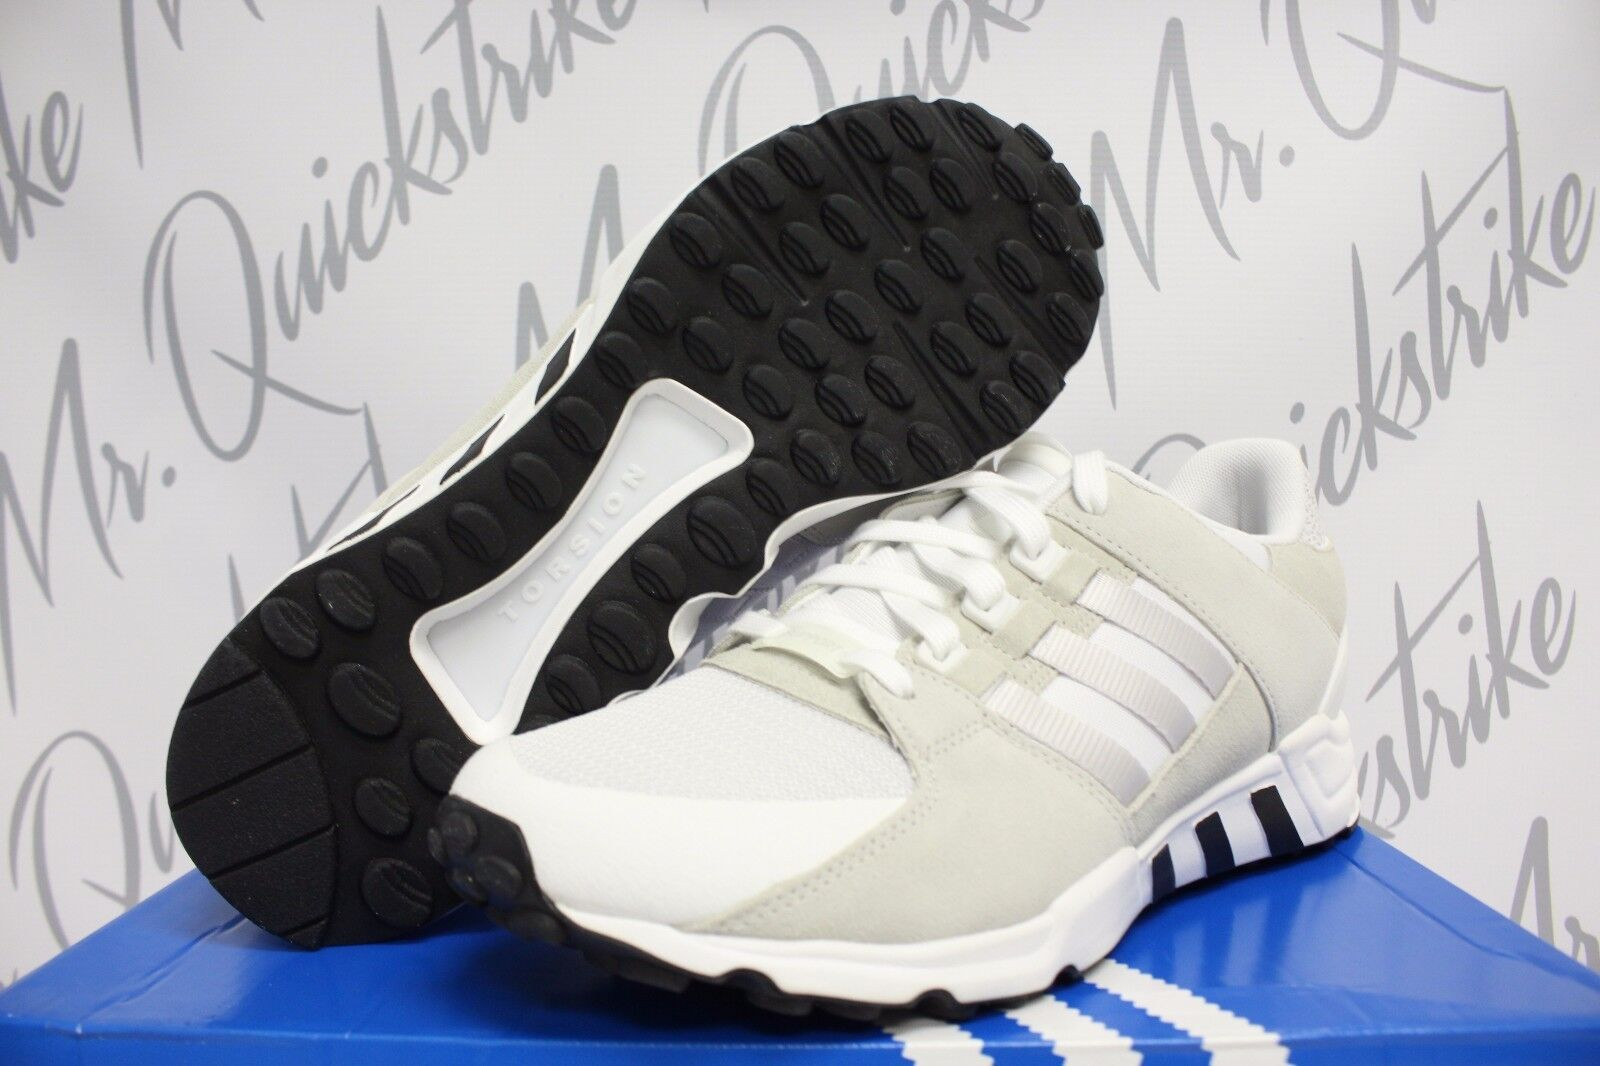 ADIDAS EQT SUPPORT RF Price reduction Brand discount